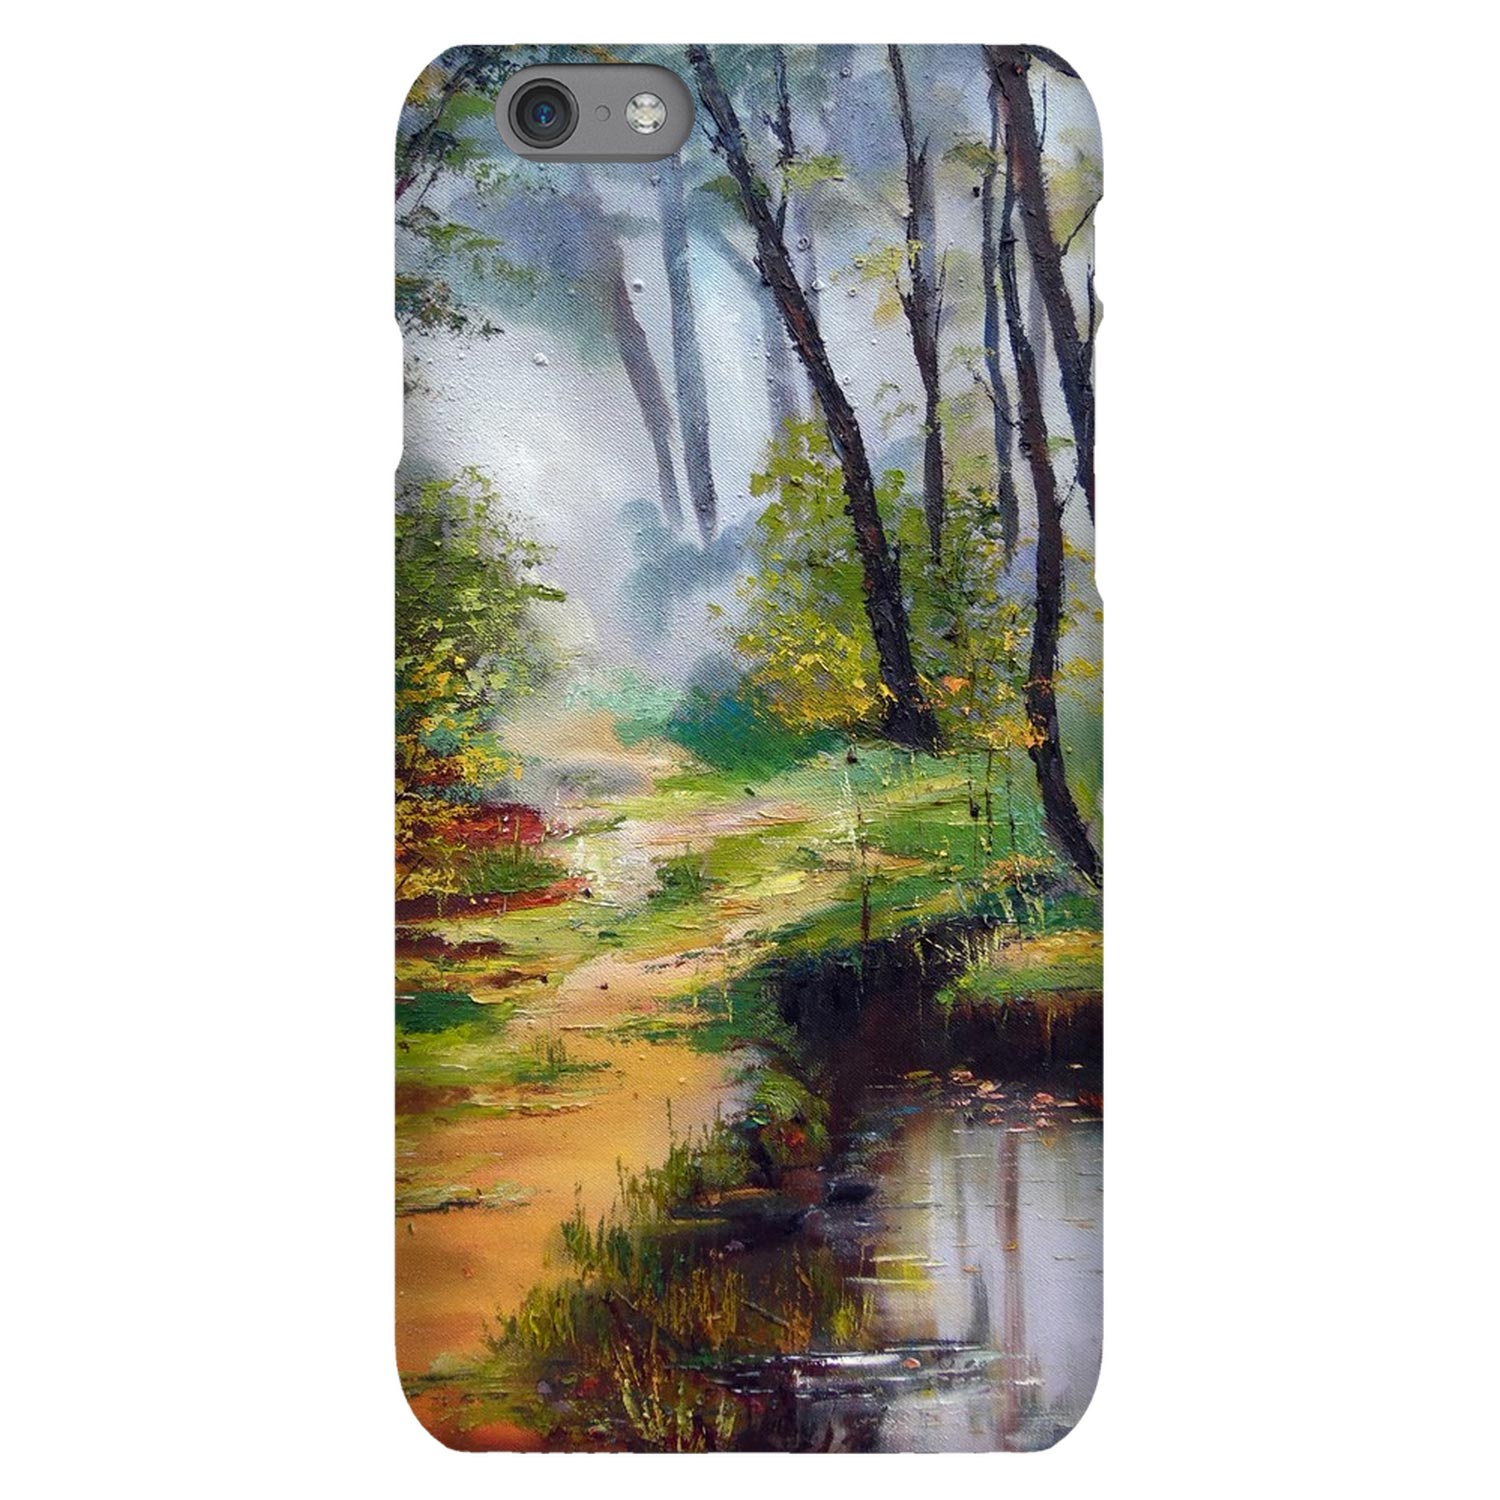 Artsy iPhone Case – Mystic Forest